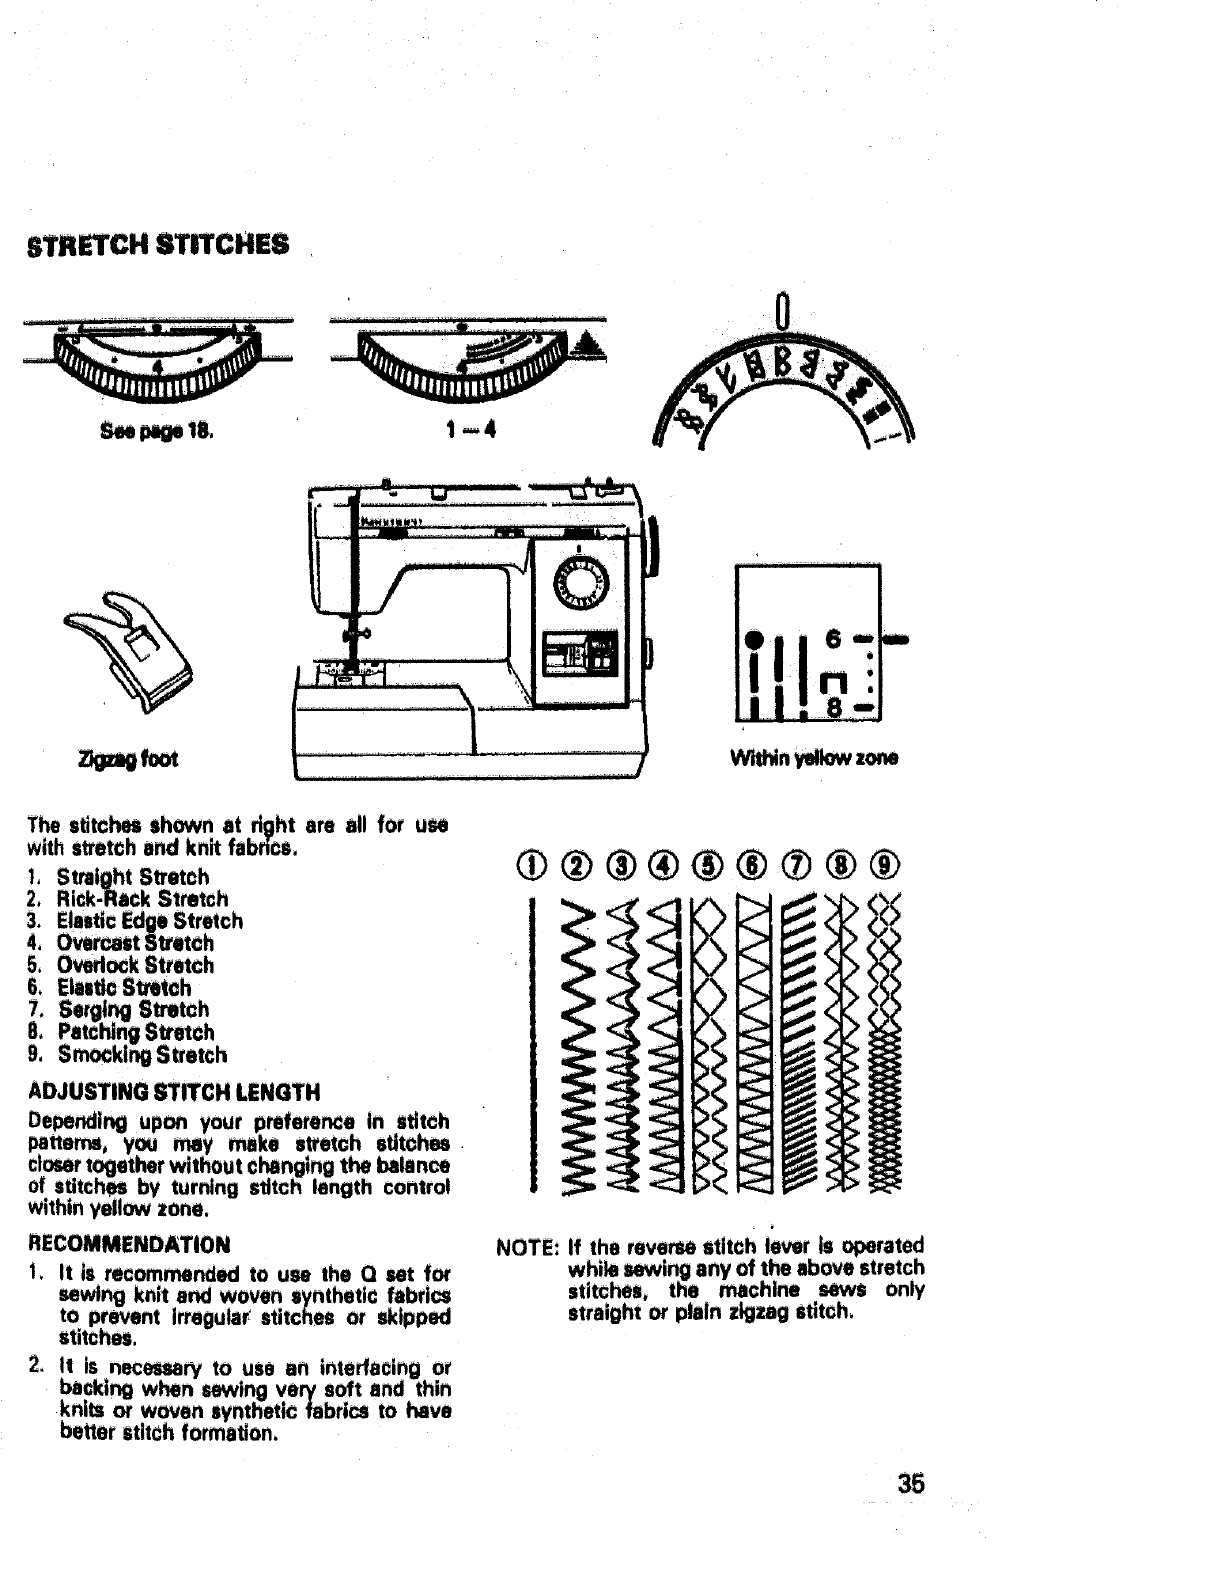 Page 36 of Sears Sewing Machine 17892 User Guide